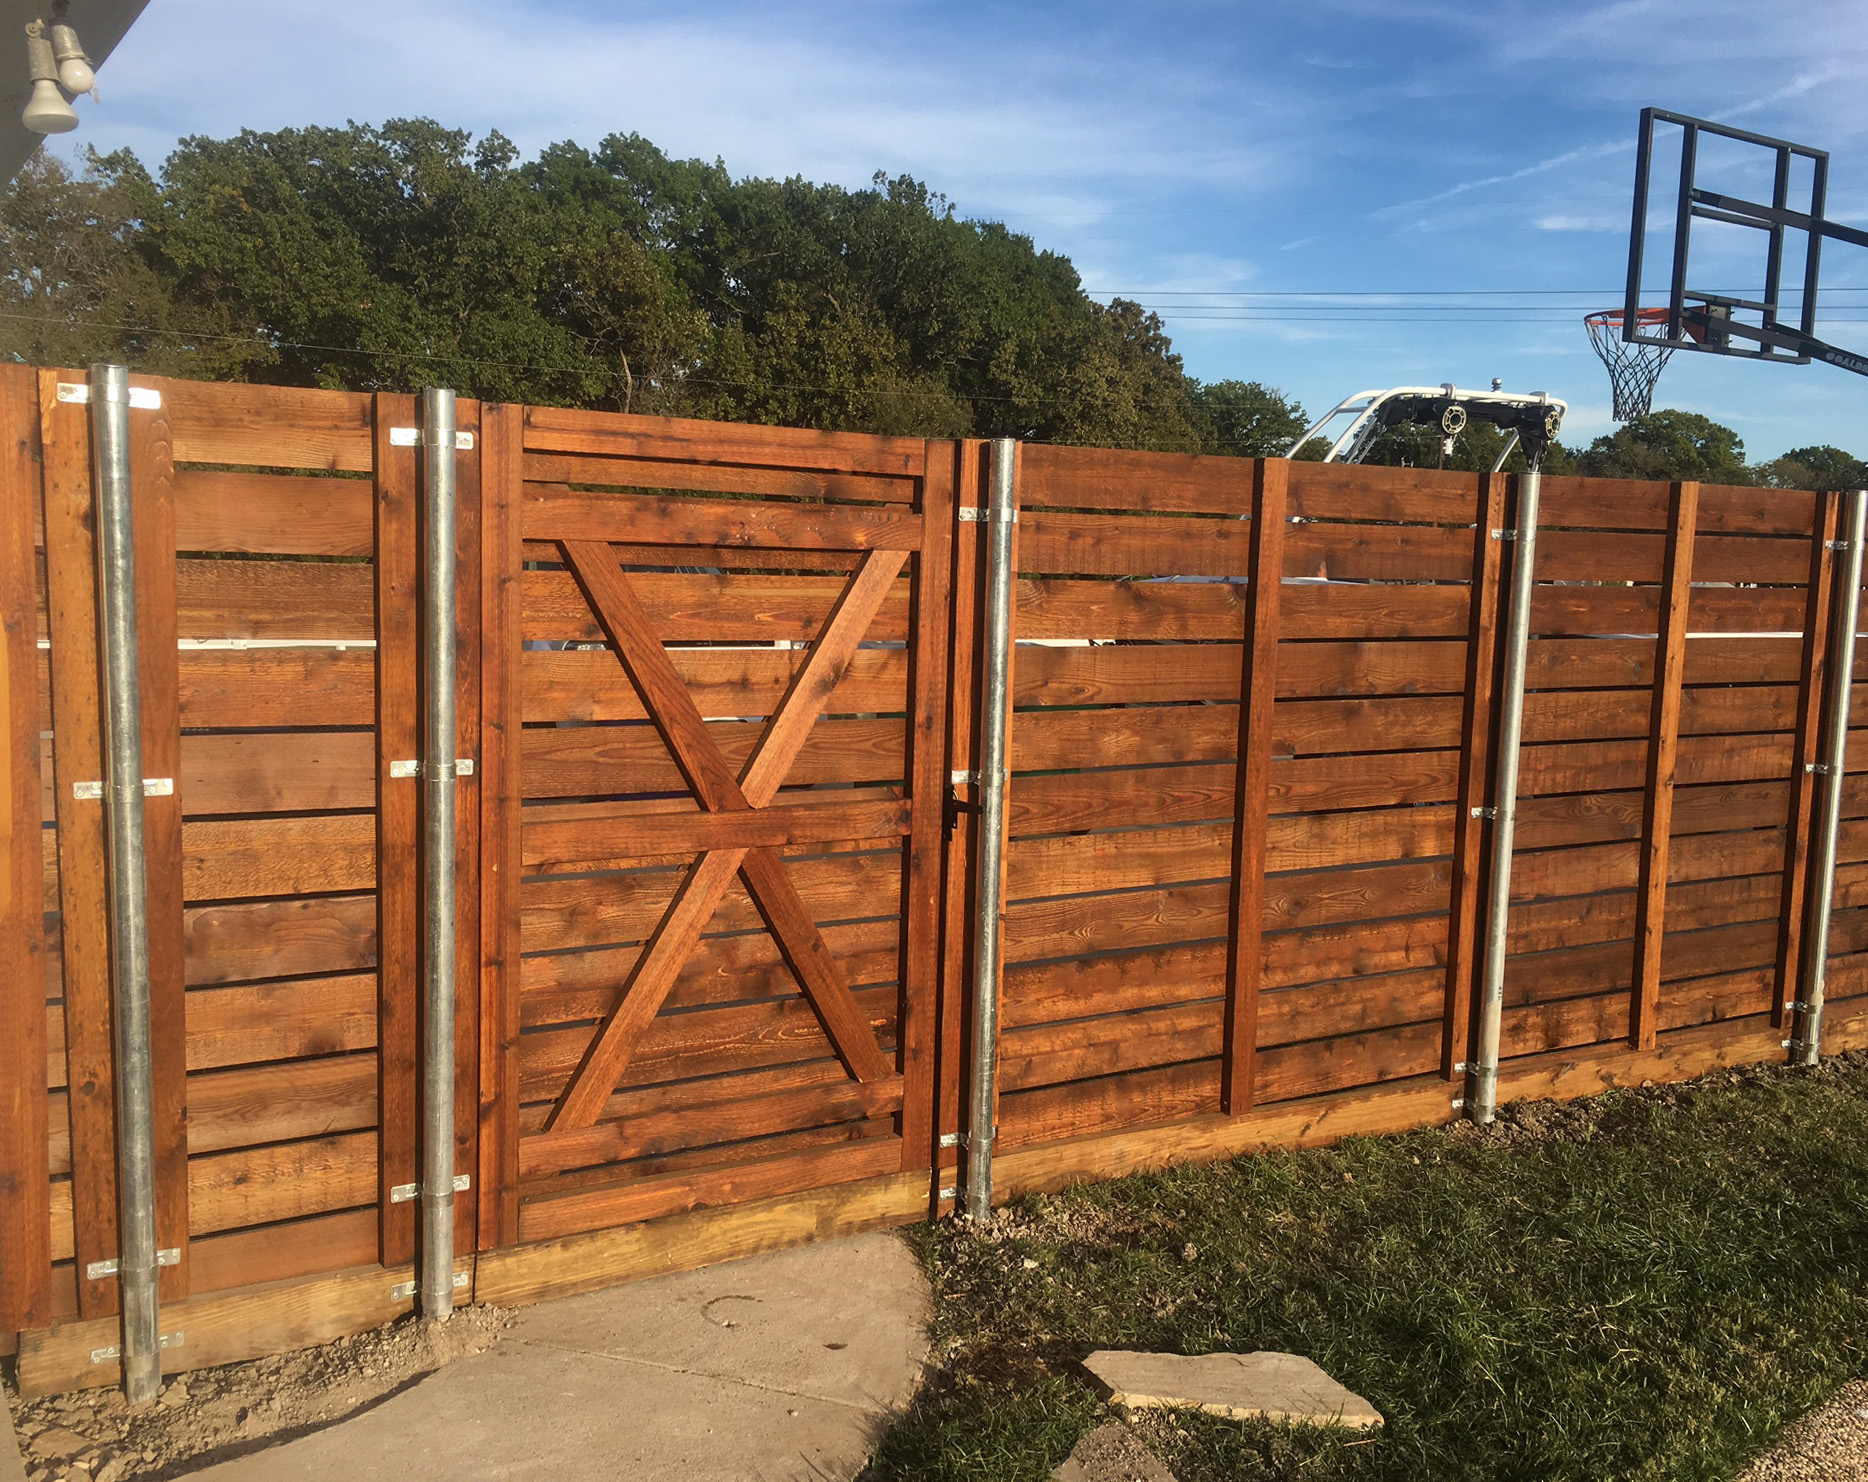 Call A Better Fence Company Today For A Free Horizontal Wood Fence  Estimate! (940)220 9099